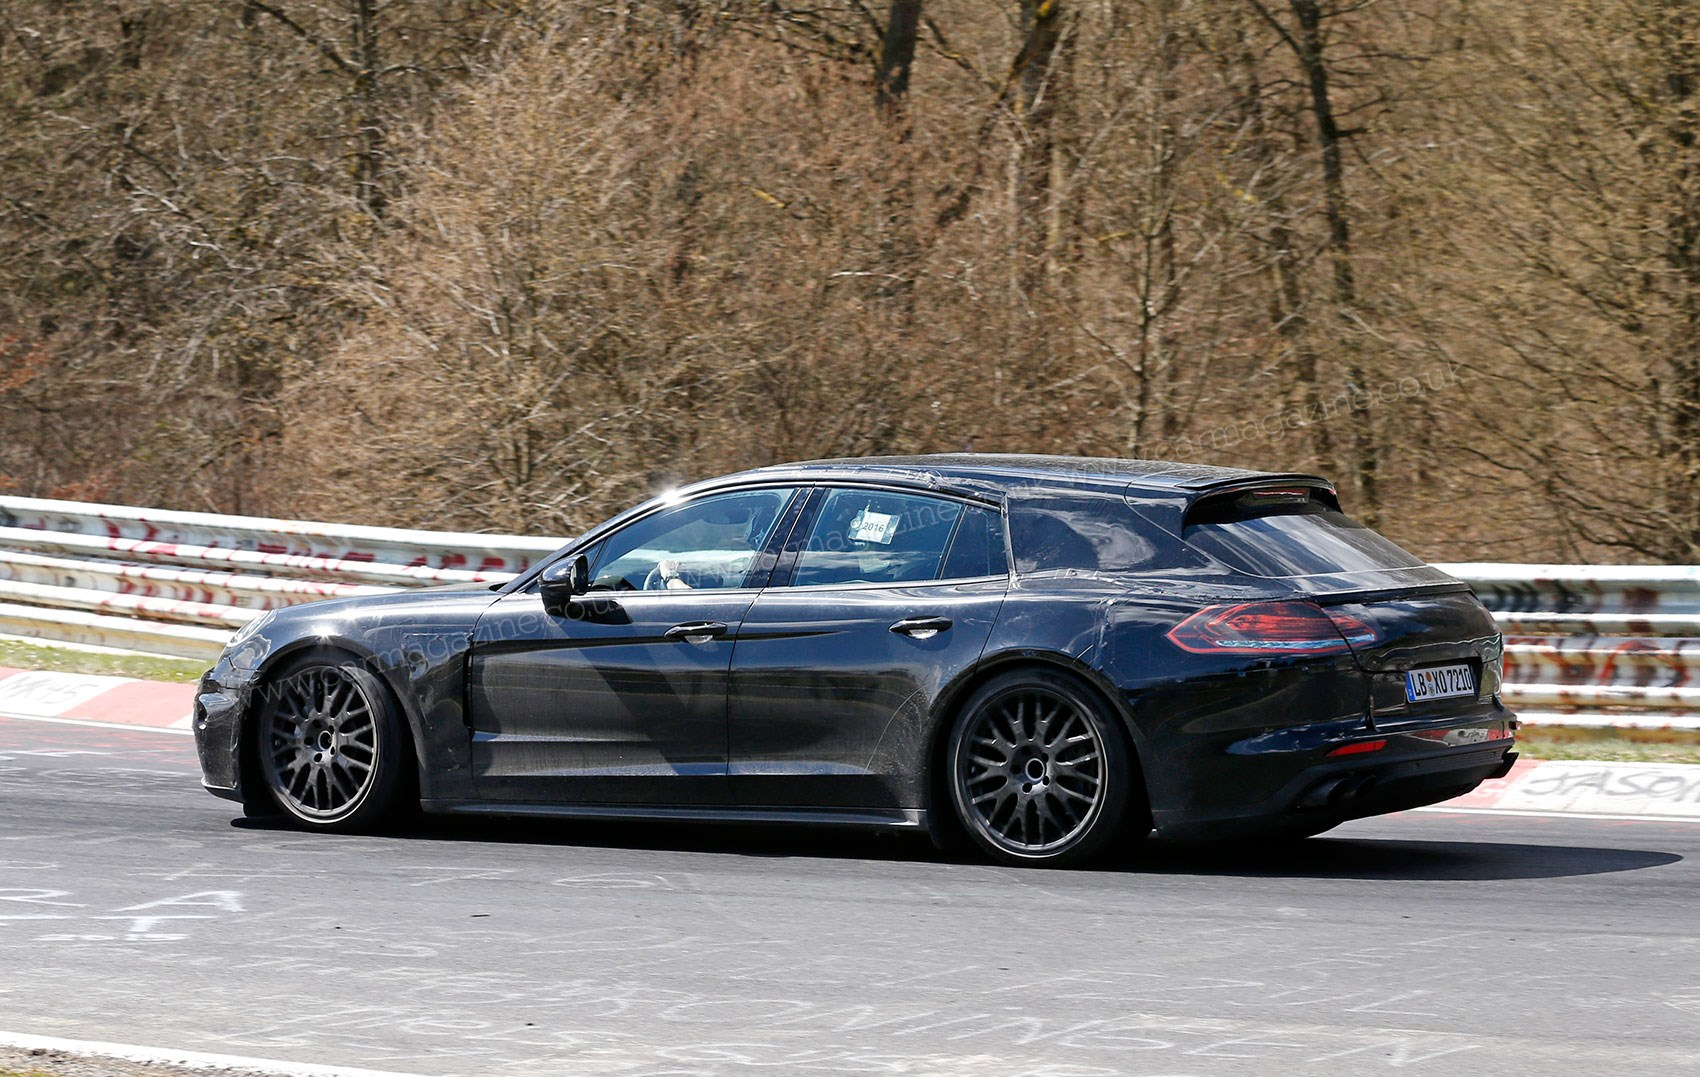 Porsche Panamera G2 Hybrids And Wagon On The Way By Car